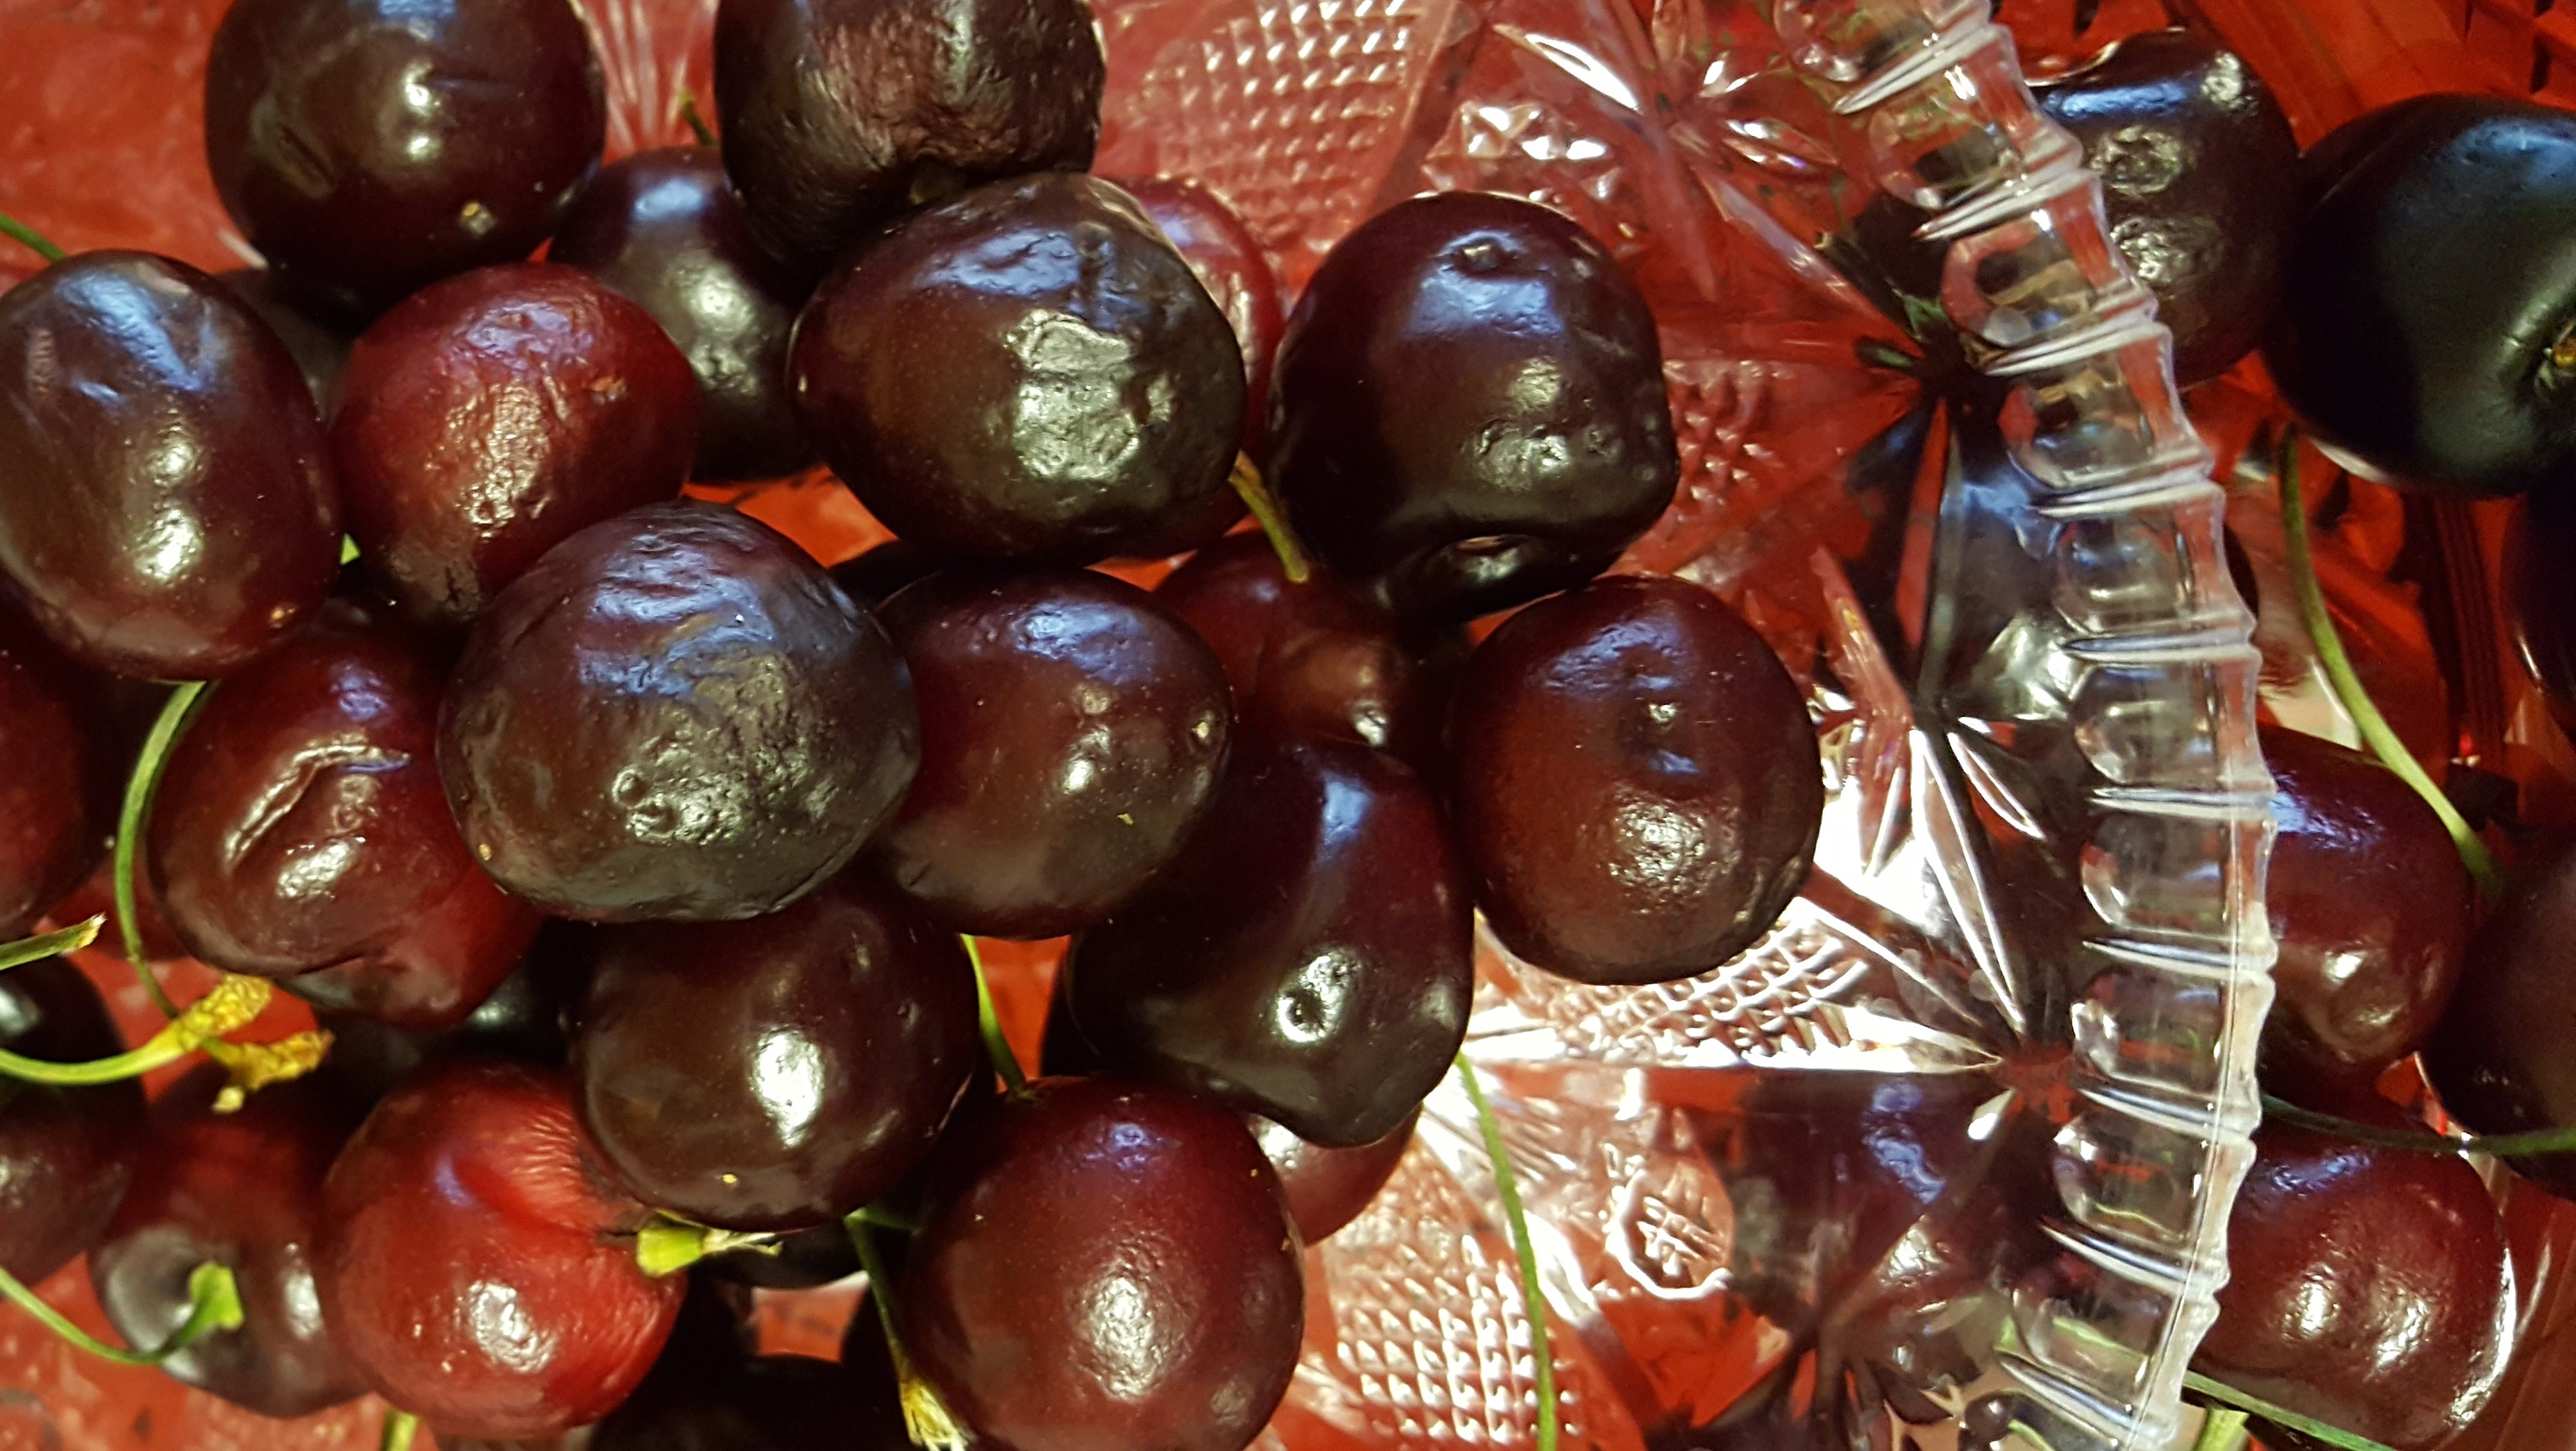 Should I throw out these cherries?